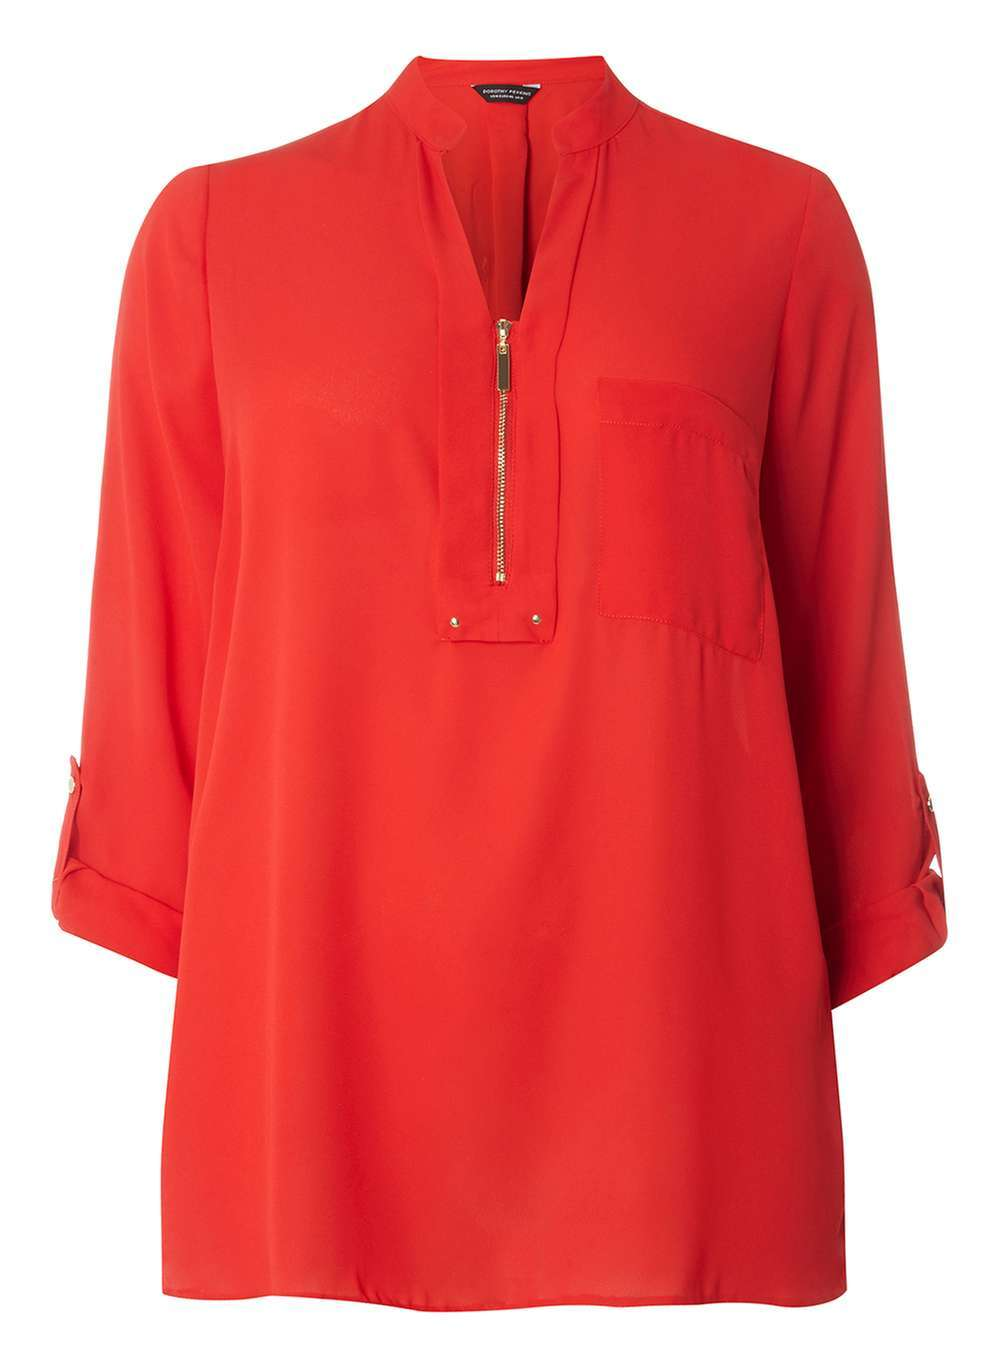 Womens **Dp Curve Zip Notch Neck Shirt Red - neckline: v-neck; pattern: plain; style: shirt; predominant colour: true red; occasions: casual, creative work; length: standard; fibres: polyester/polyamide - 100%; fit: loose; sleeve length: 3/4 length; sleeve style: standard; texture group: sheer fabrics/chiffon/organza etc.; pattern type: fabric; season: a/w 2016